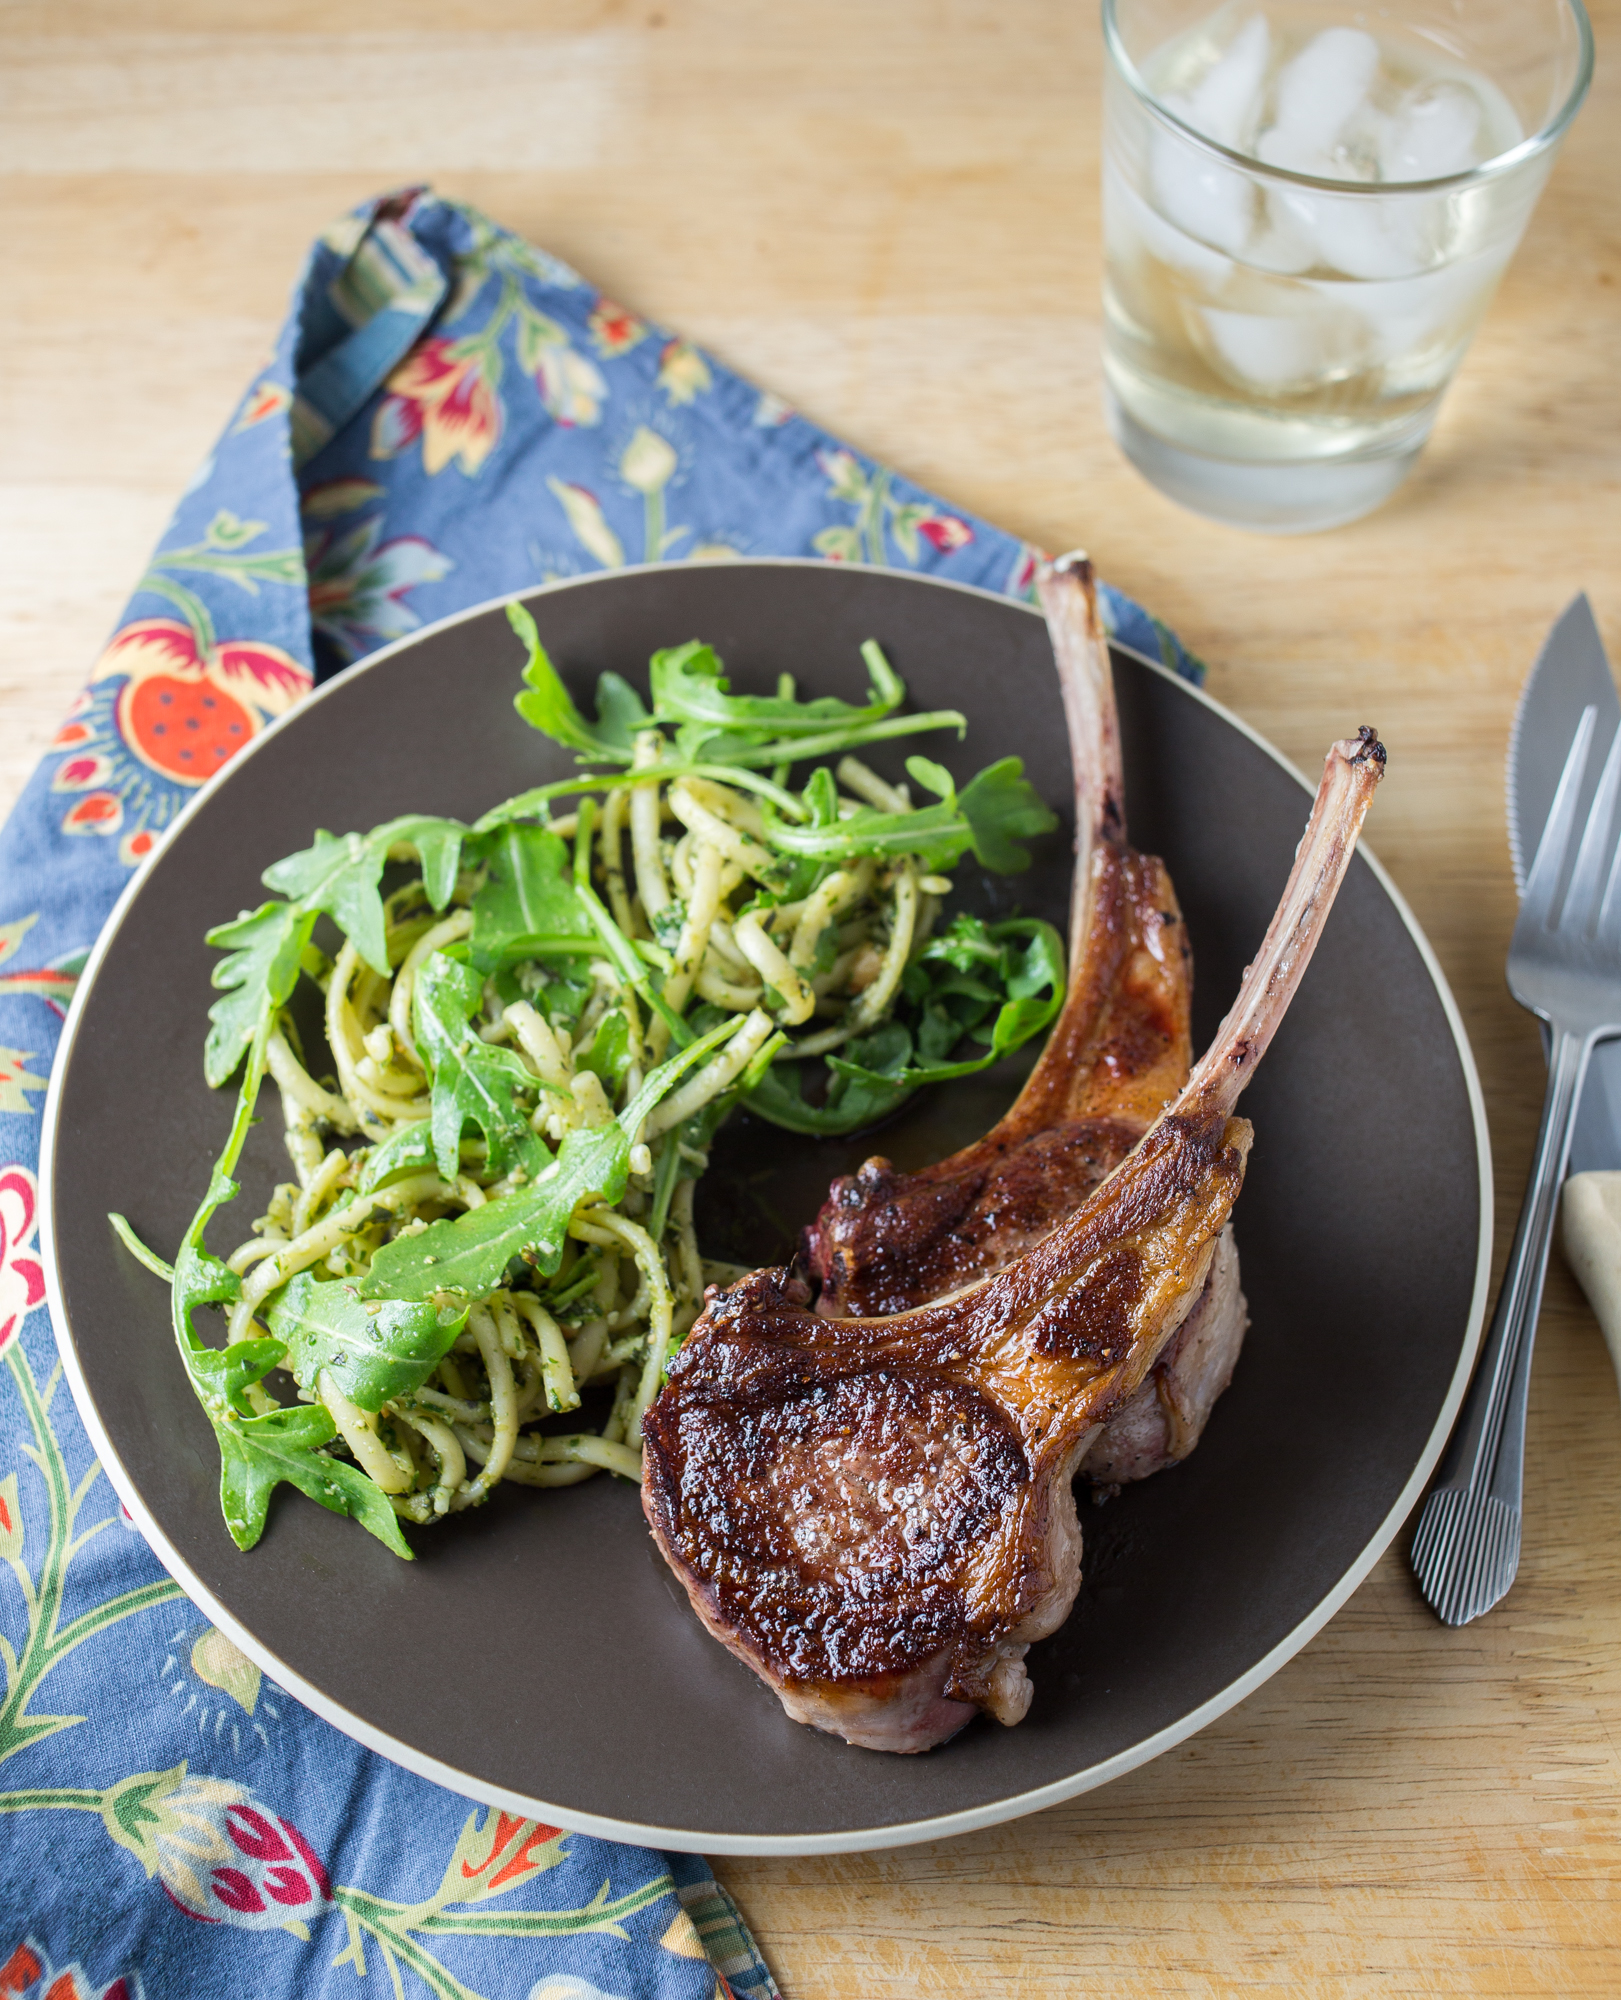 minty pasta salad with lamb rib chops